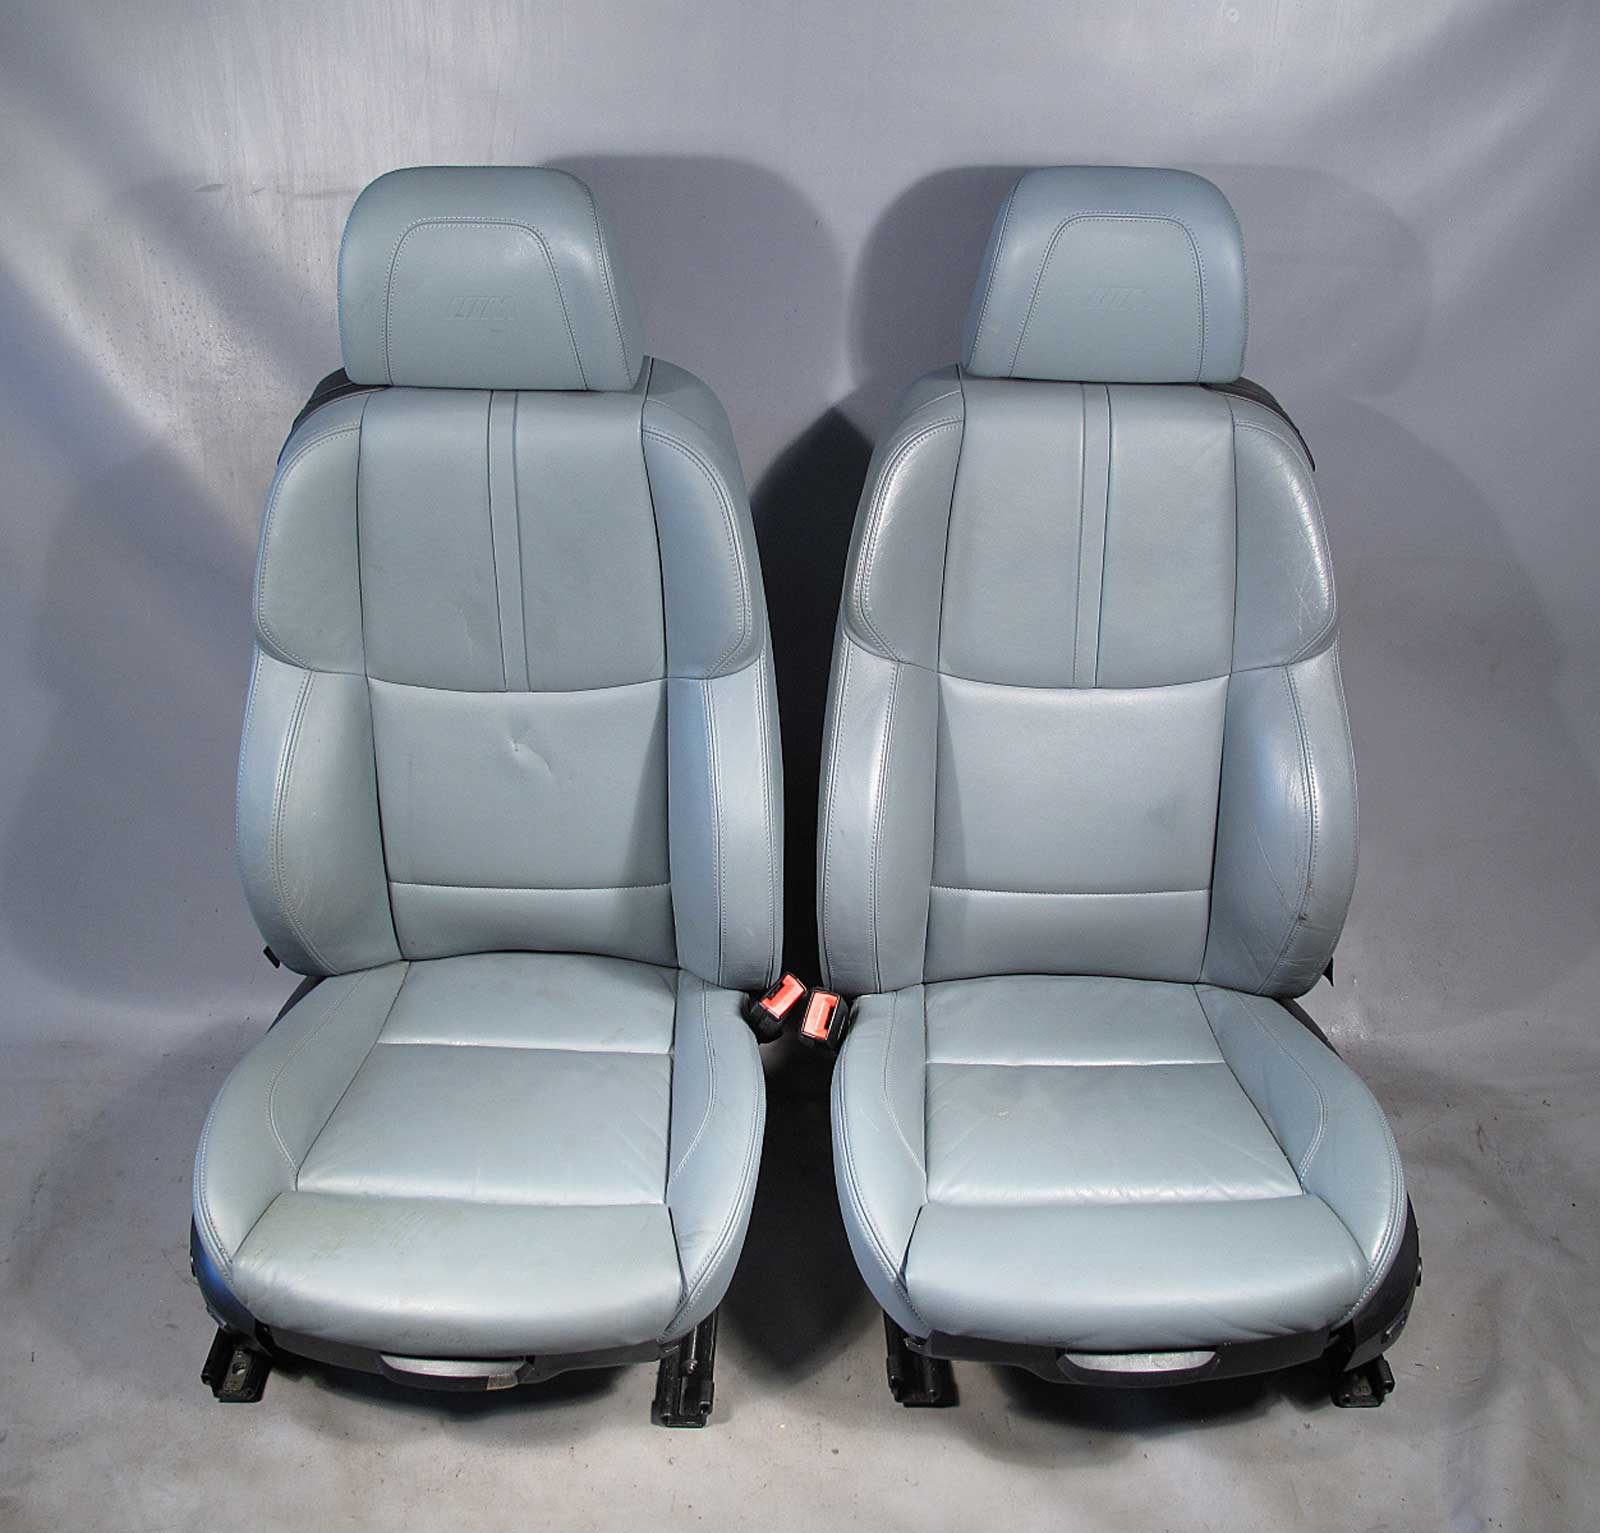 Bmw E92 M3 Seat Covers Velcromag